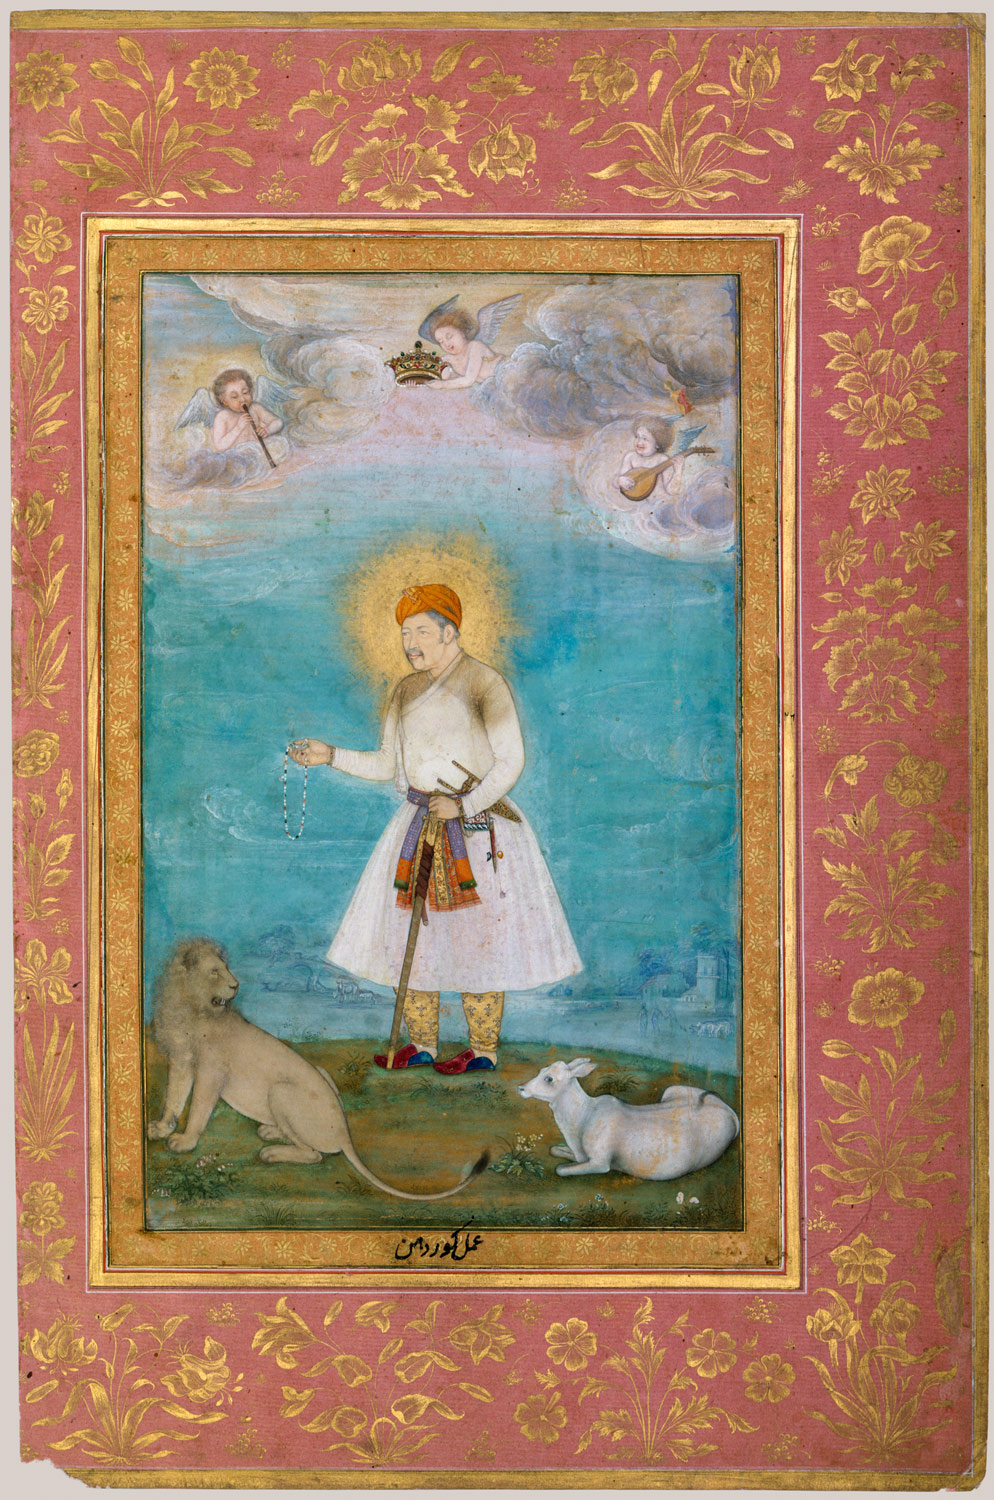 The Glorification of Akbar: Leaf from the Shah Jahan Album